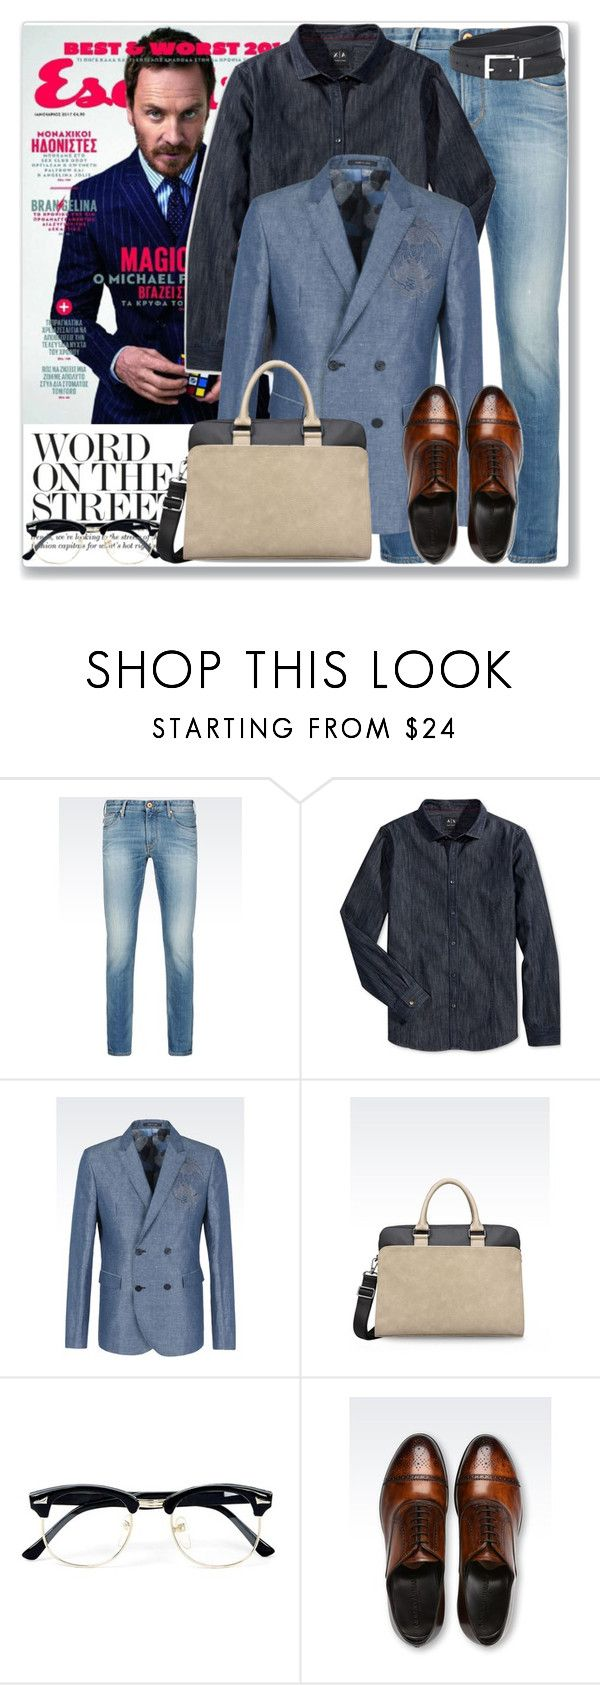 """""""Man of Style: Michael Fassbender"""" by coraline-marie ❤ liked on Polyvore featuring Armani Jeans, Armani Exchange, Emporio Armani, Topman, men's fashion and menswear"""